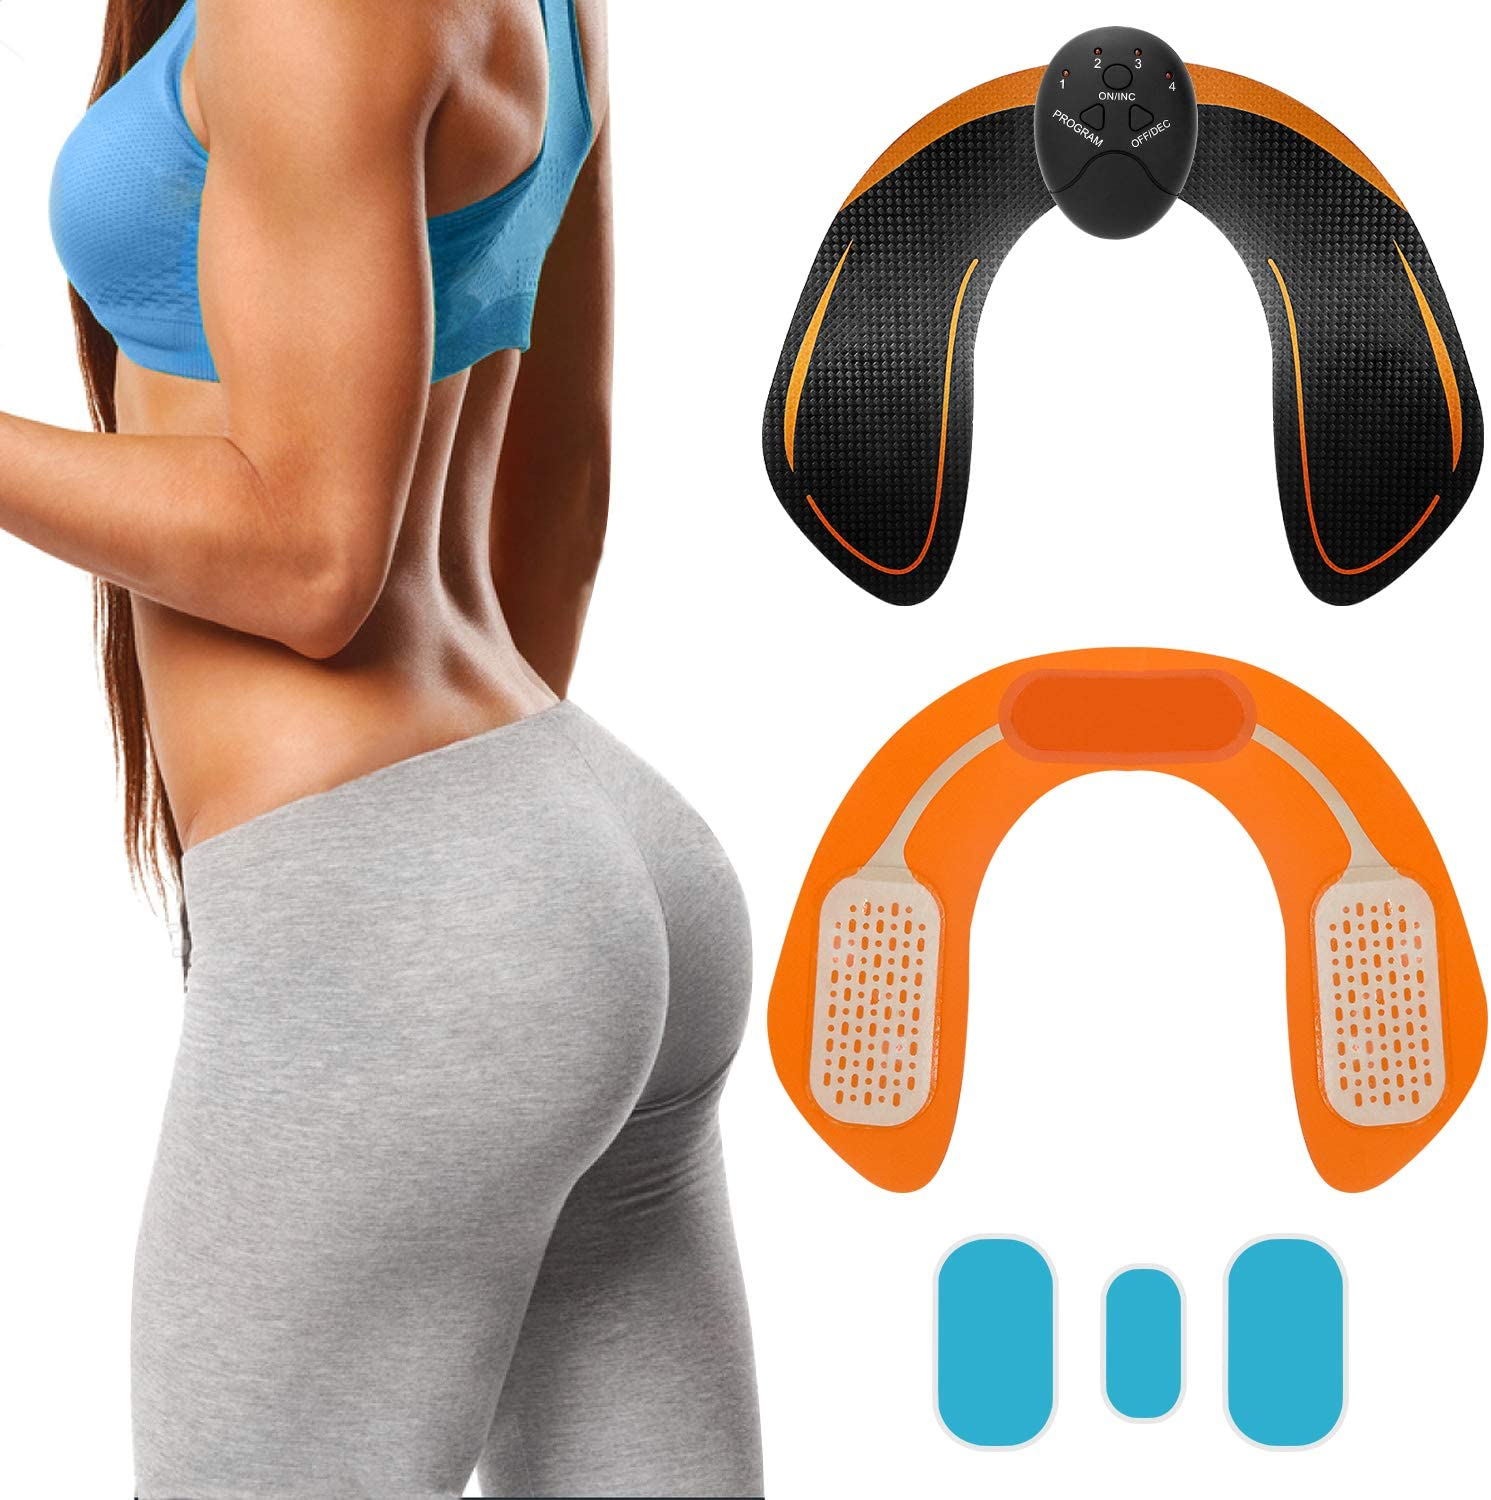 SPORTLIMIT Butt Hip Trainer,Upgrade Butt Muscle Toner, EMS Hip Muscle Trainer,Fitness Training Equipment Home Office Trainer Workout Equipment Machine Fitness for Women Men with Replacement Gel Pads